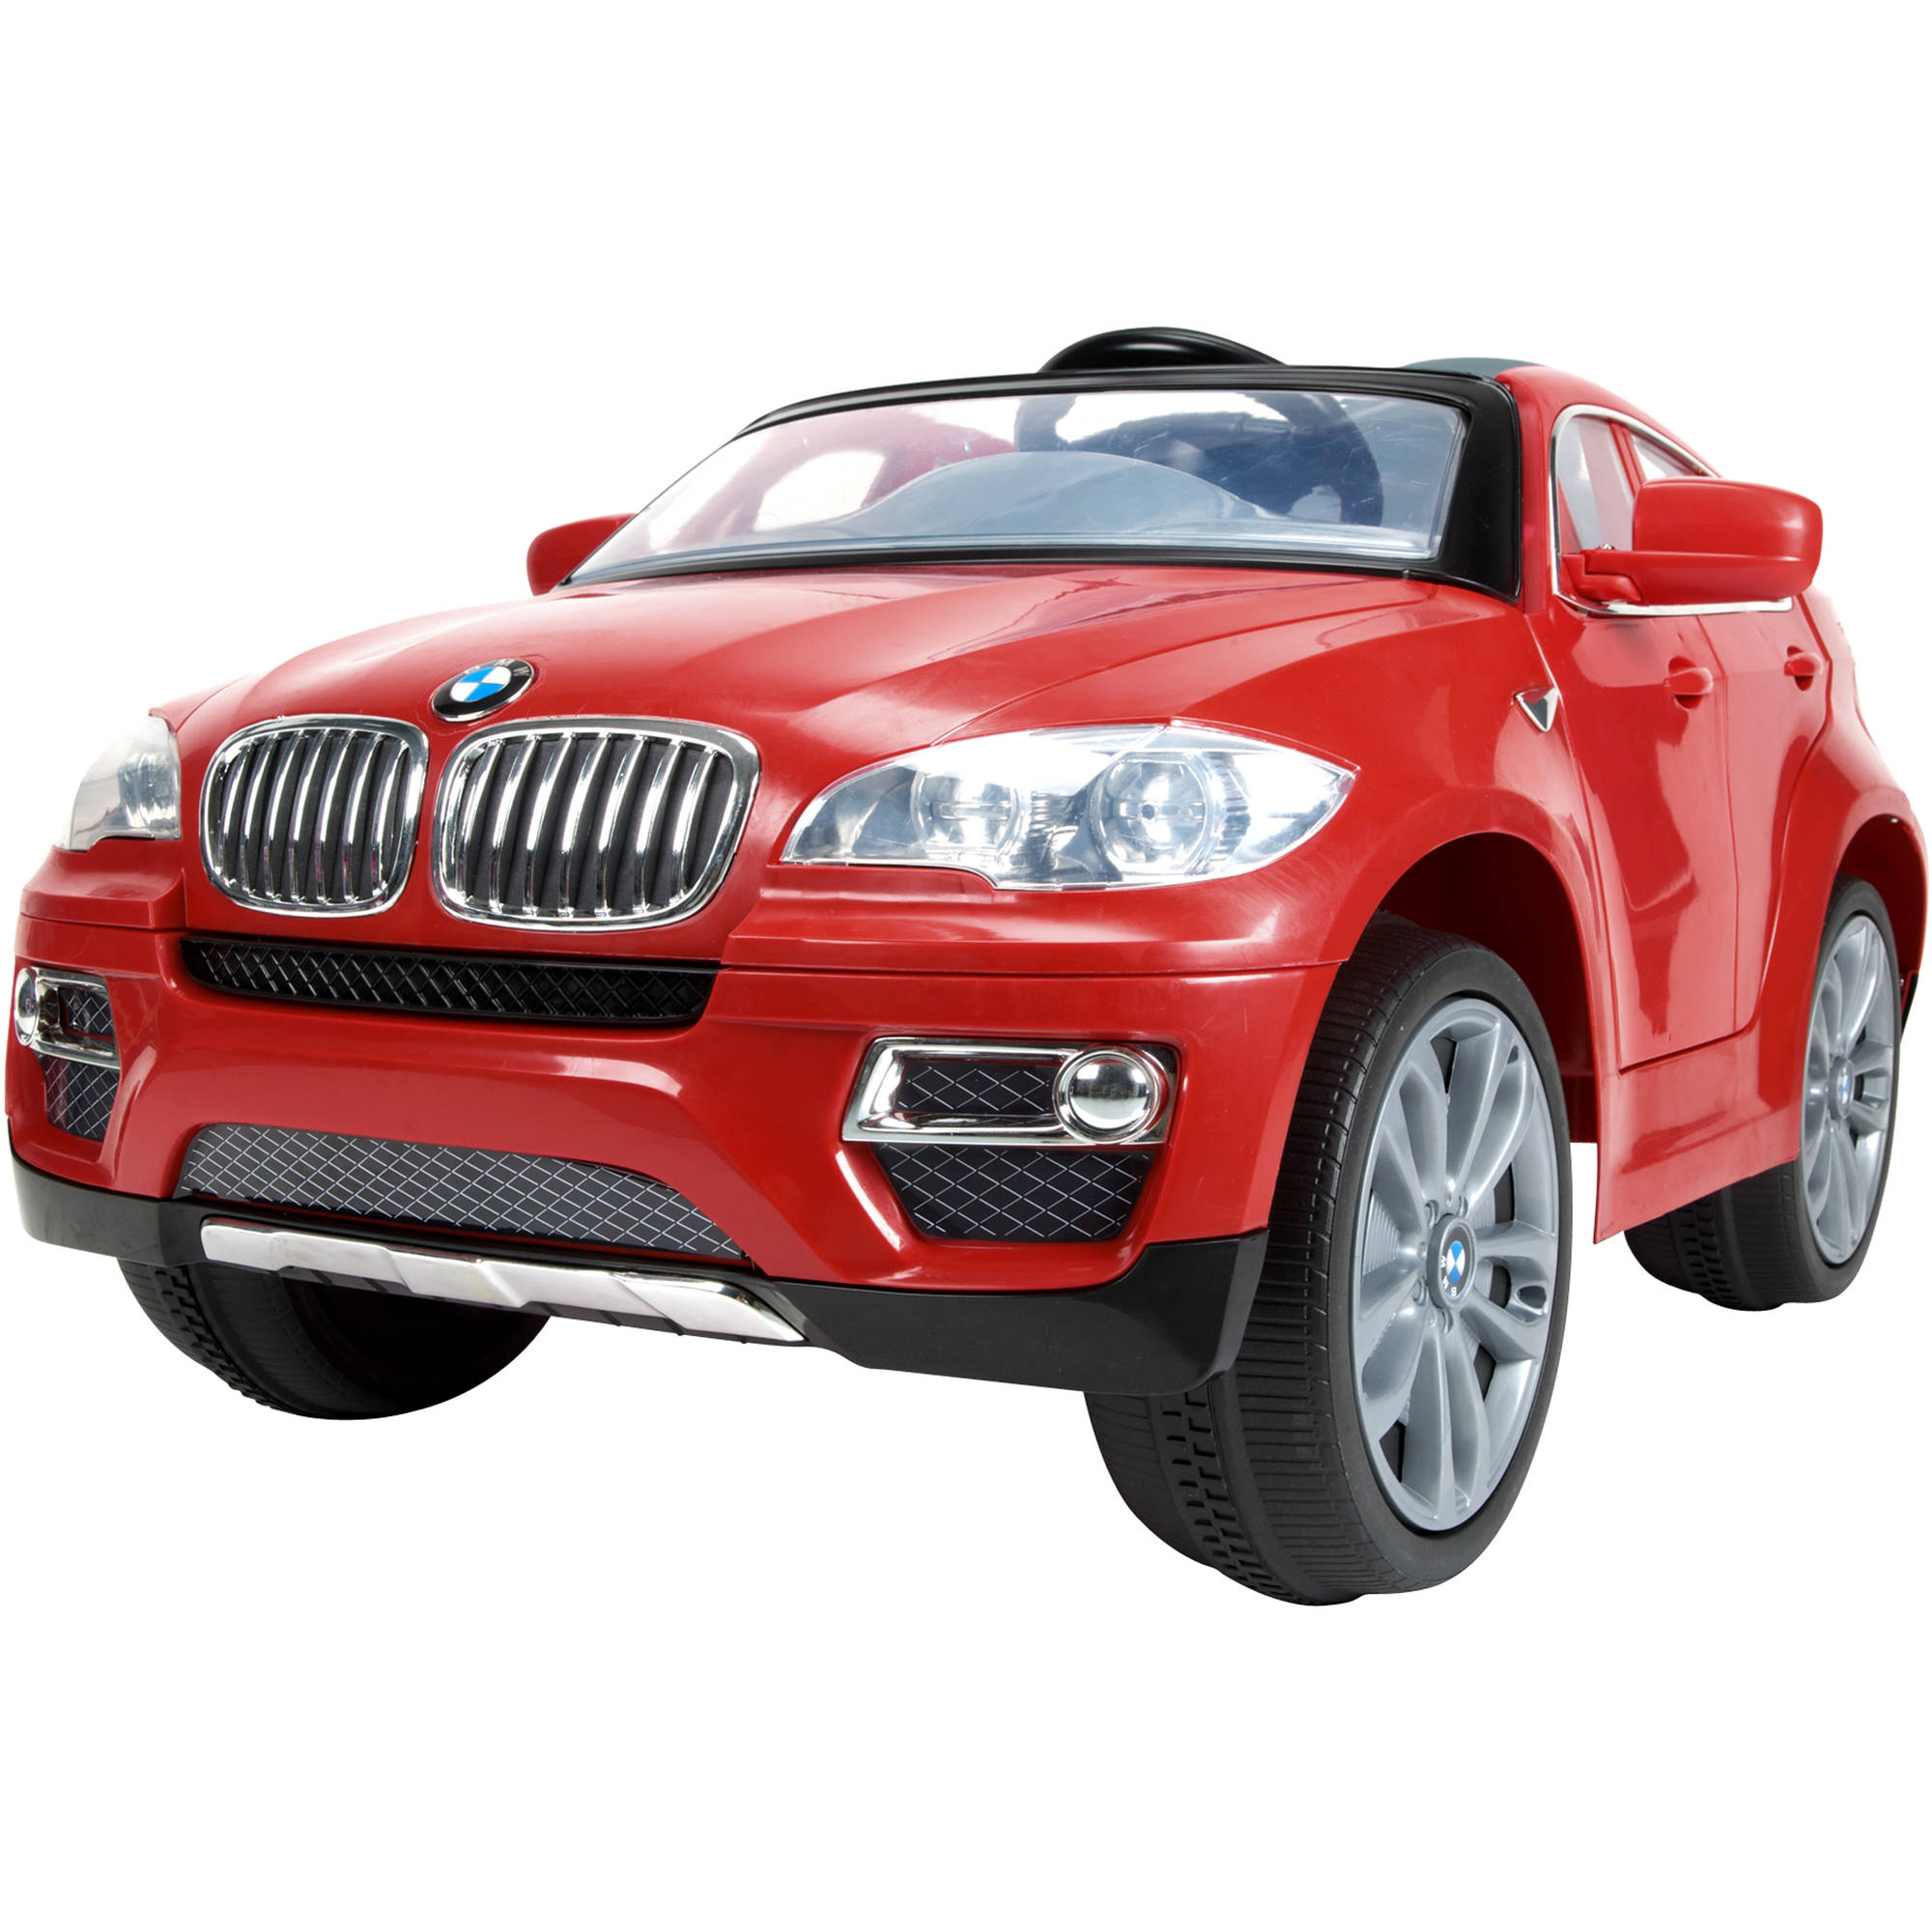 bmw x6 6 volt electric battery powered ride on toy by huffy walmartcom